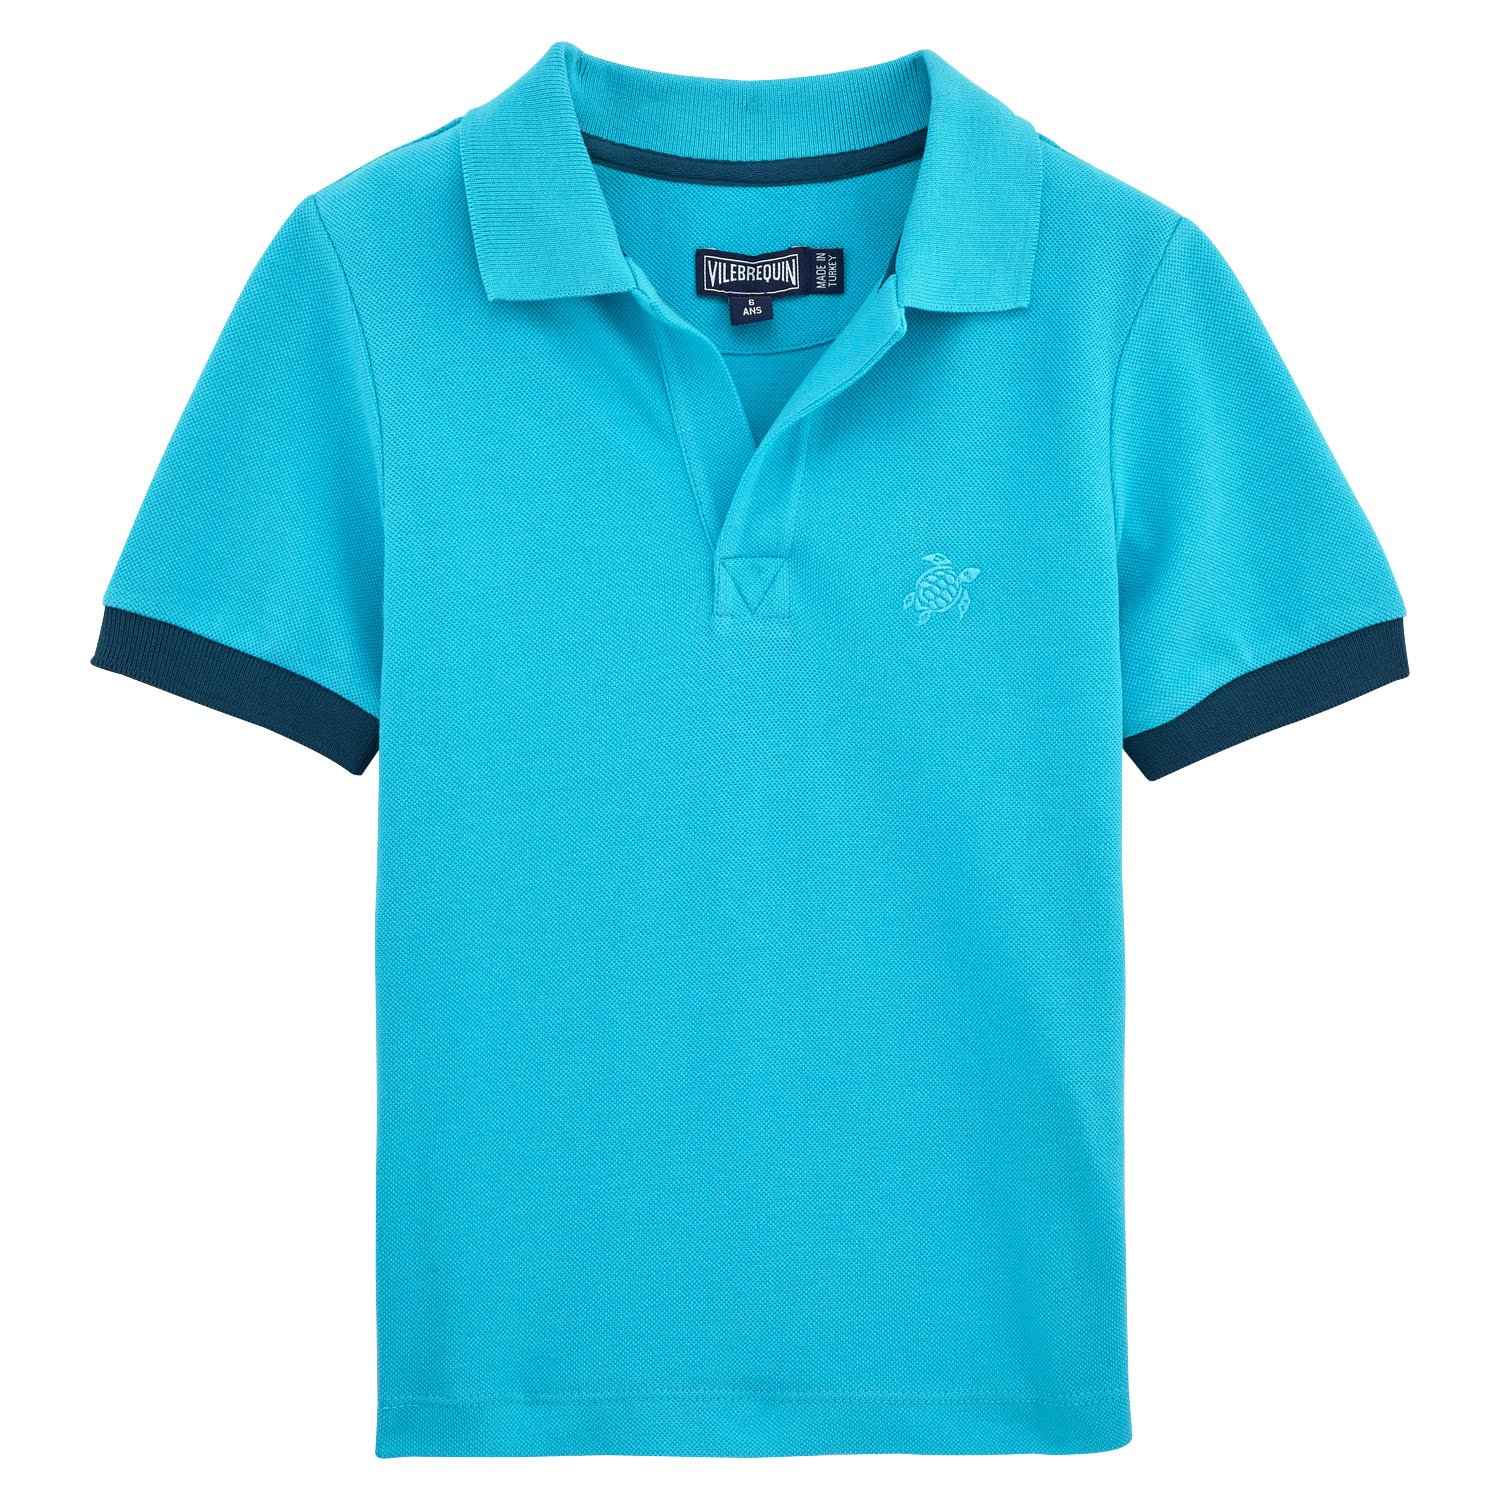 Vilebrequin Kids Baby Boy's Cotton Pique Polo (Toddler/Little Kids/Big Kids) Turquoise 12 Years